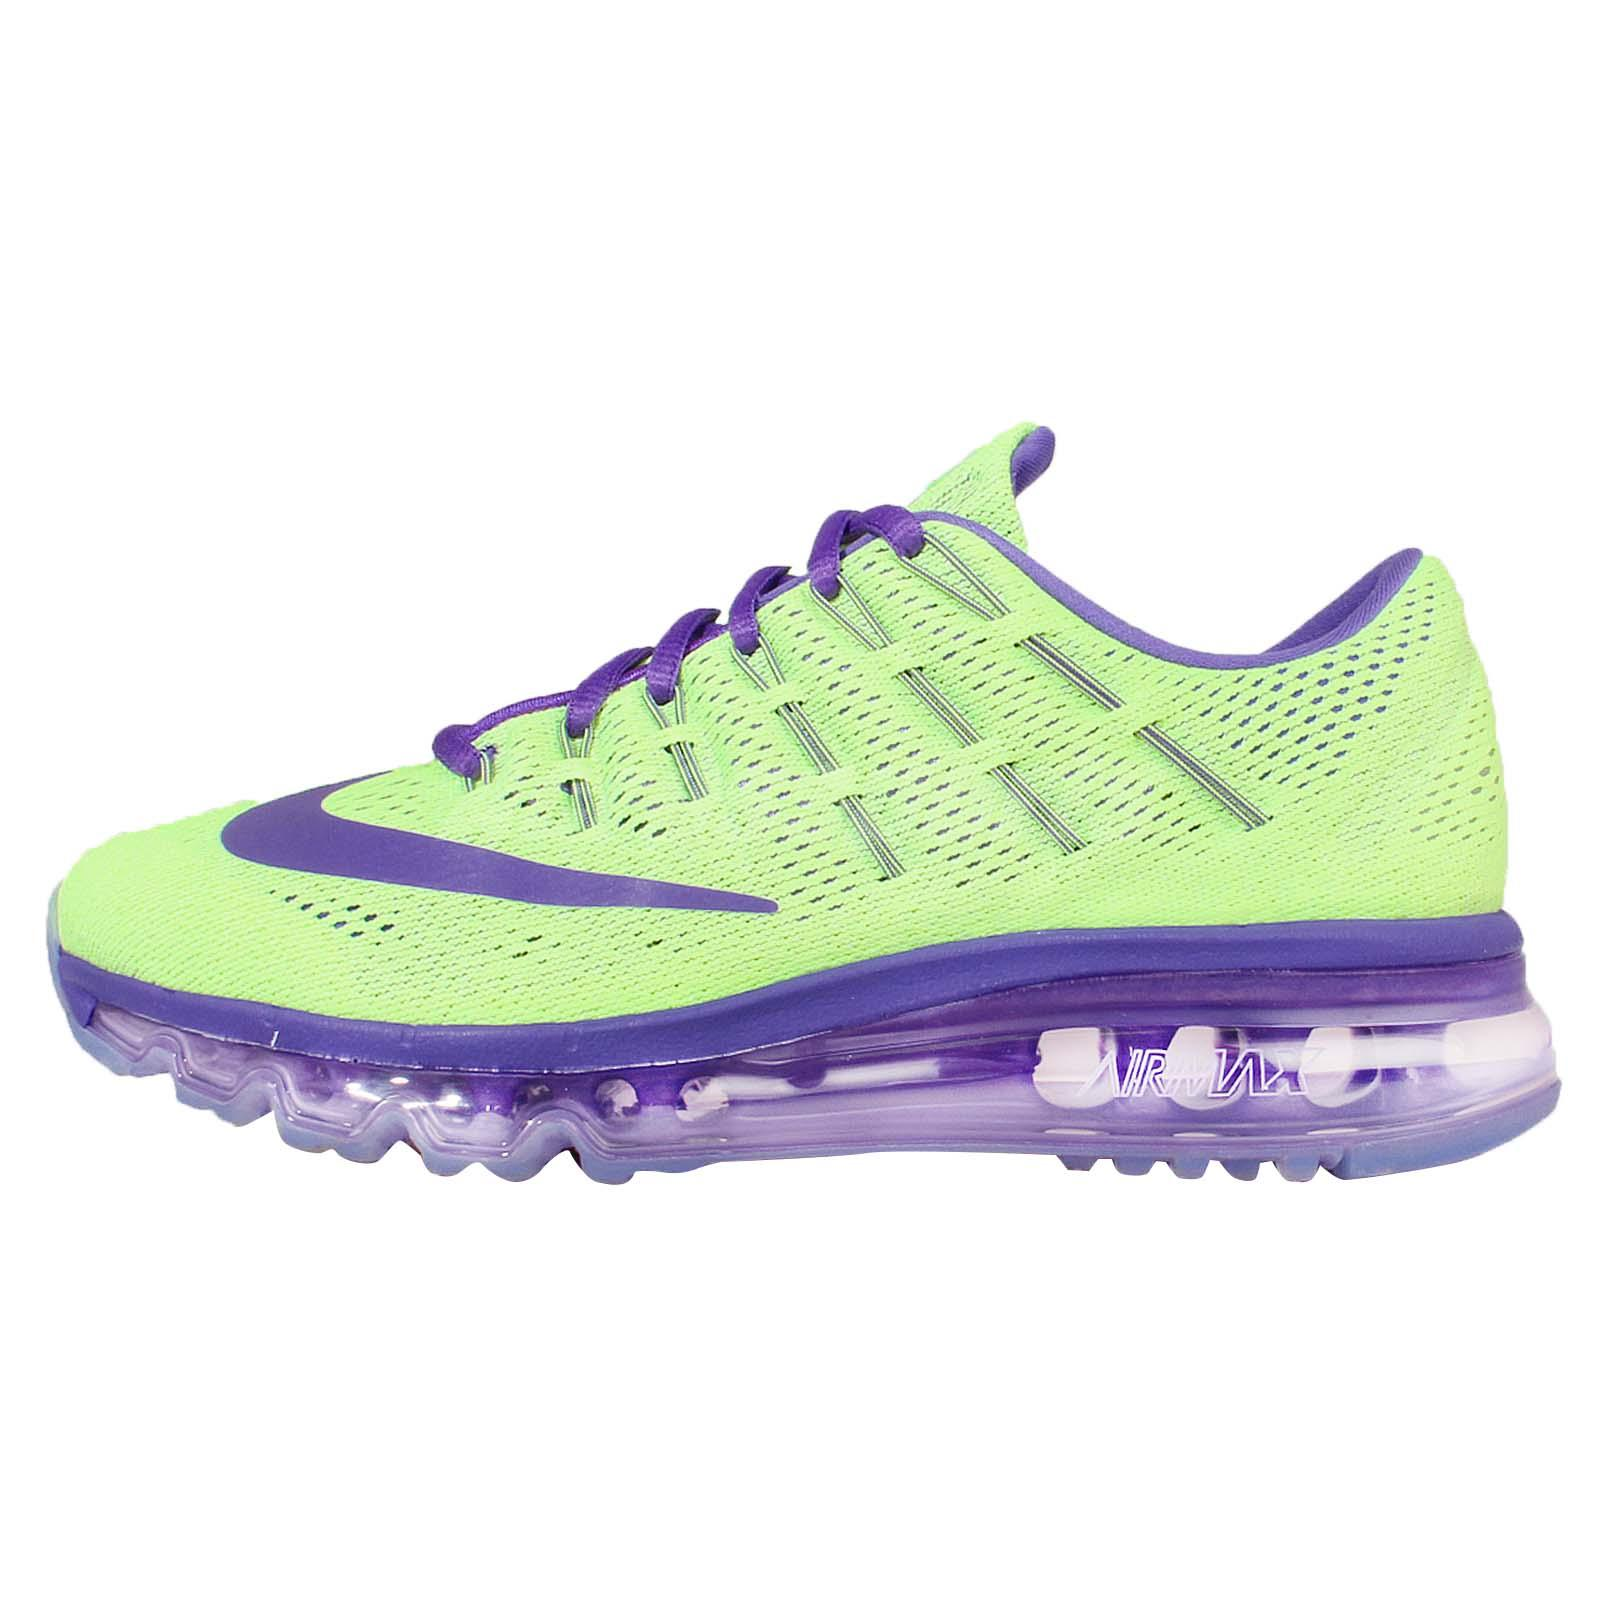 nike air max 2016 kids price